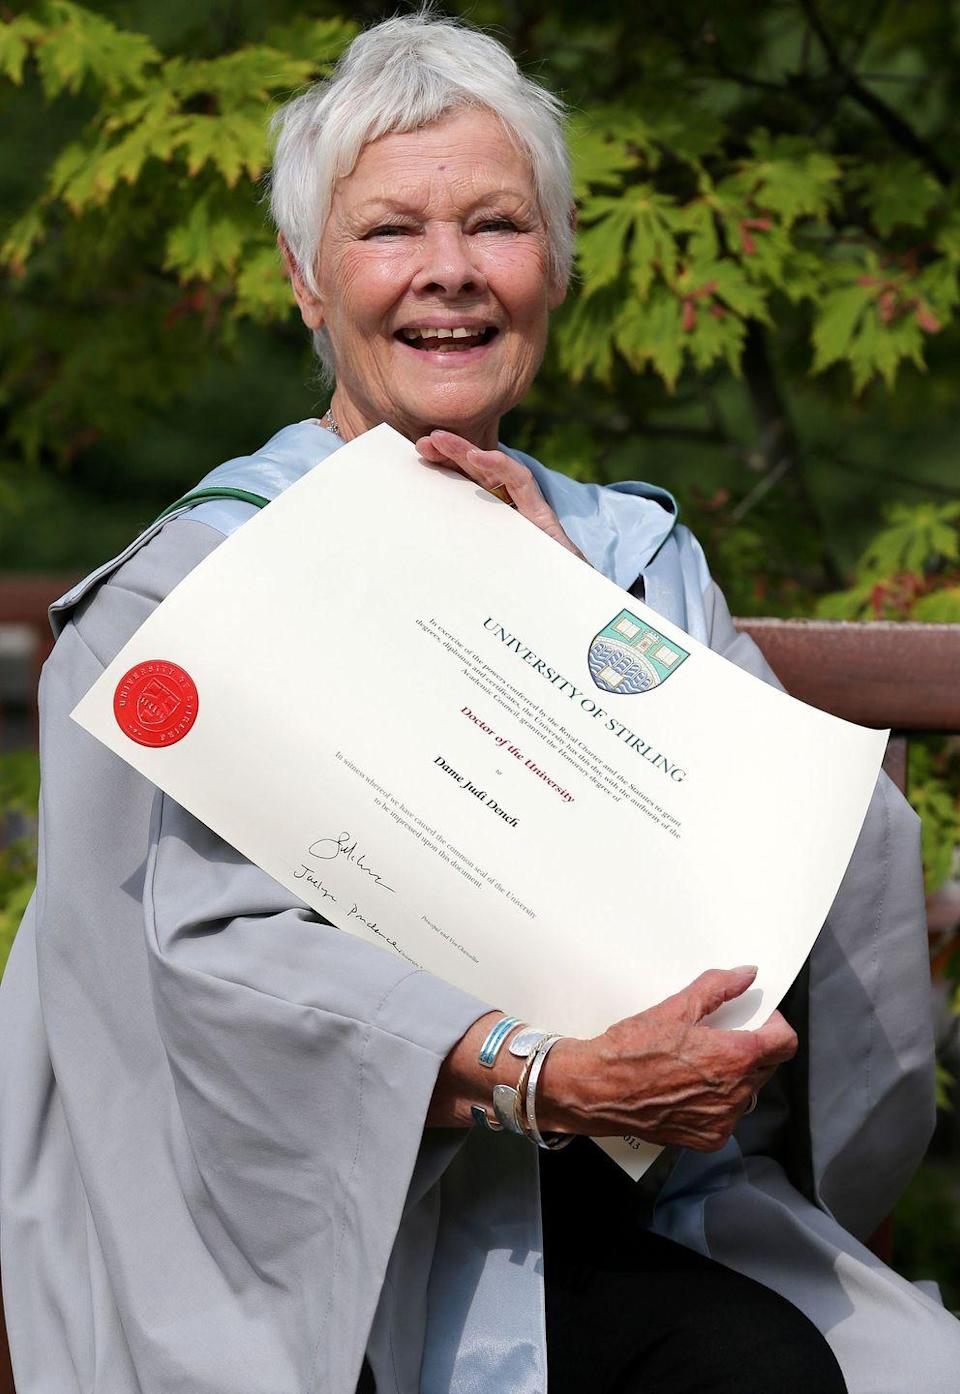 <p>Dame Judi Dench was honored by the Iris Murdoch Dementia Service Development Centre at Stirling University after receiving a doctorate for her contribution to film.<br></p>